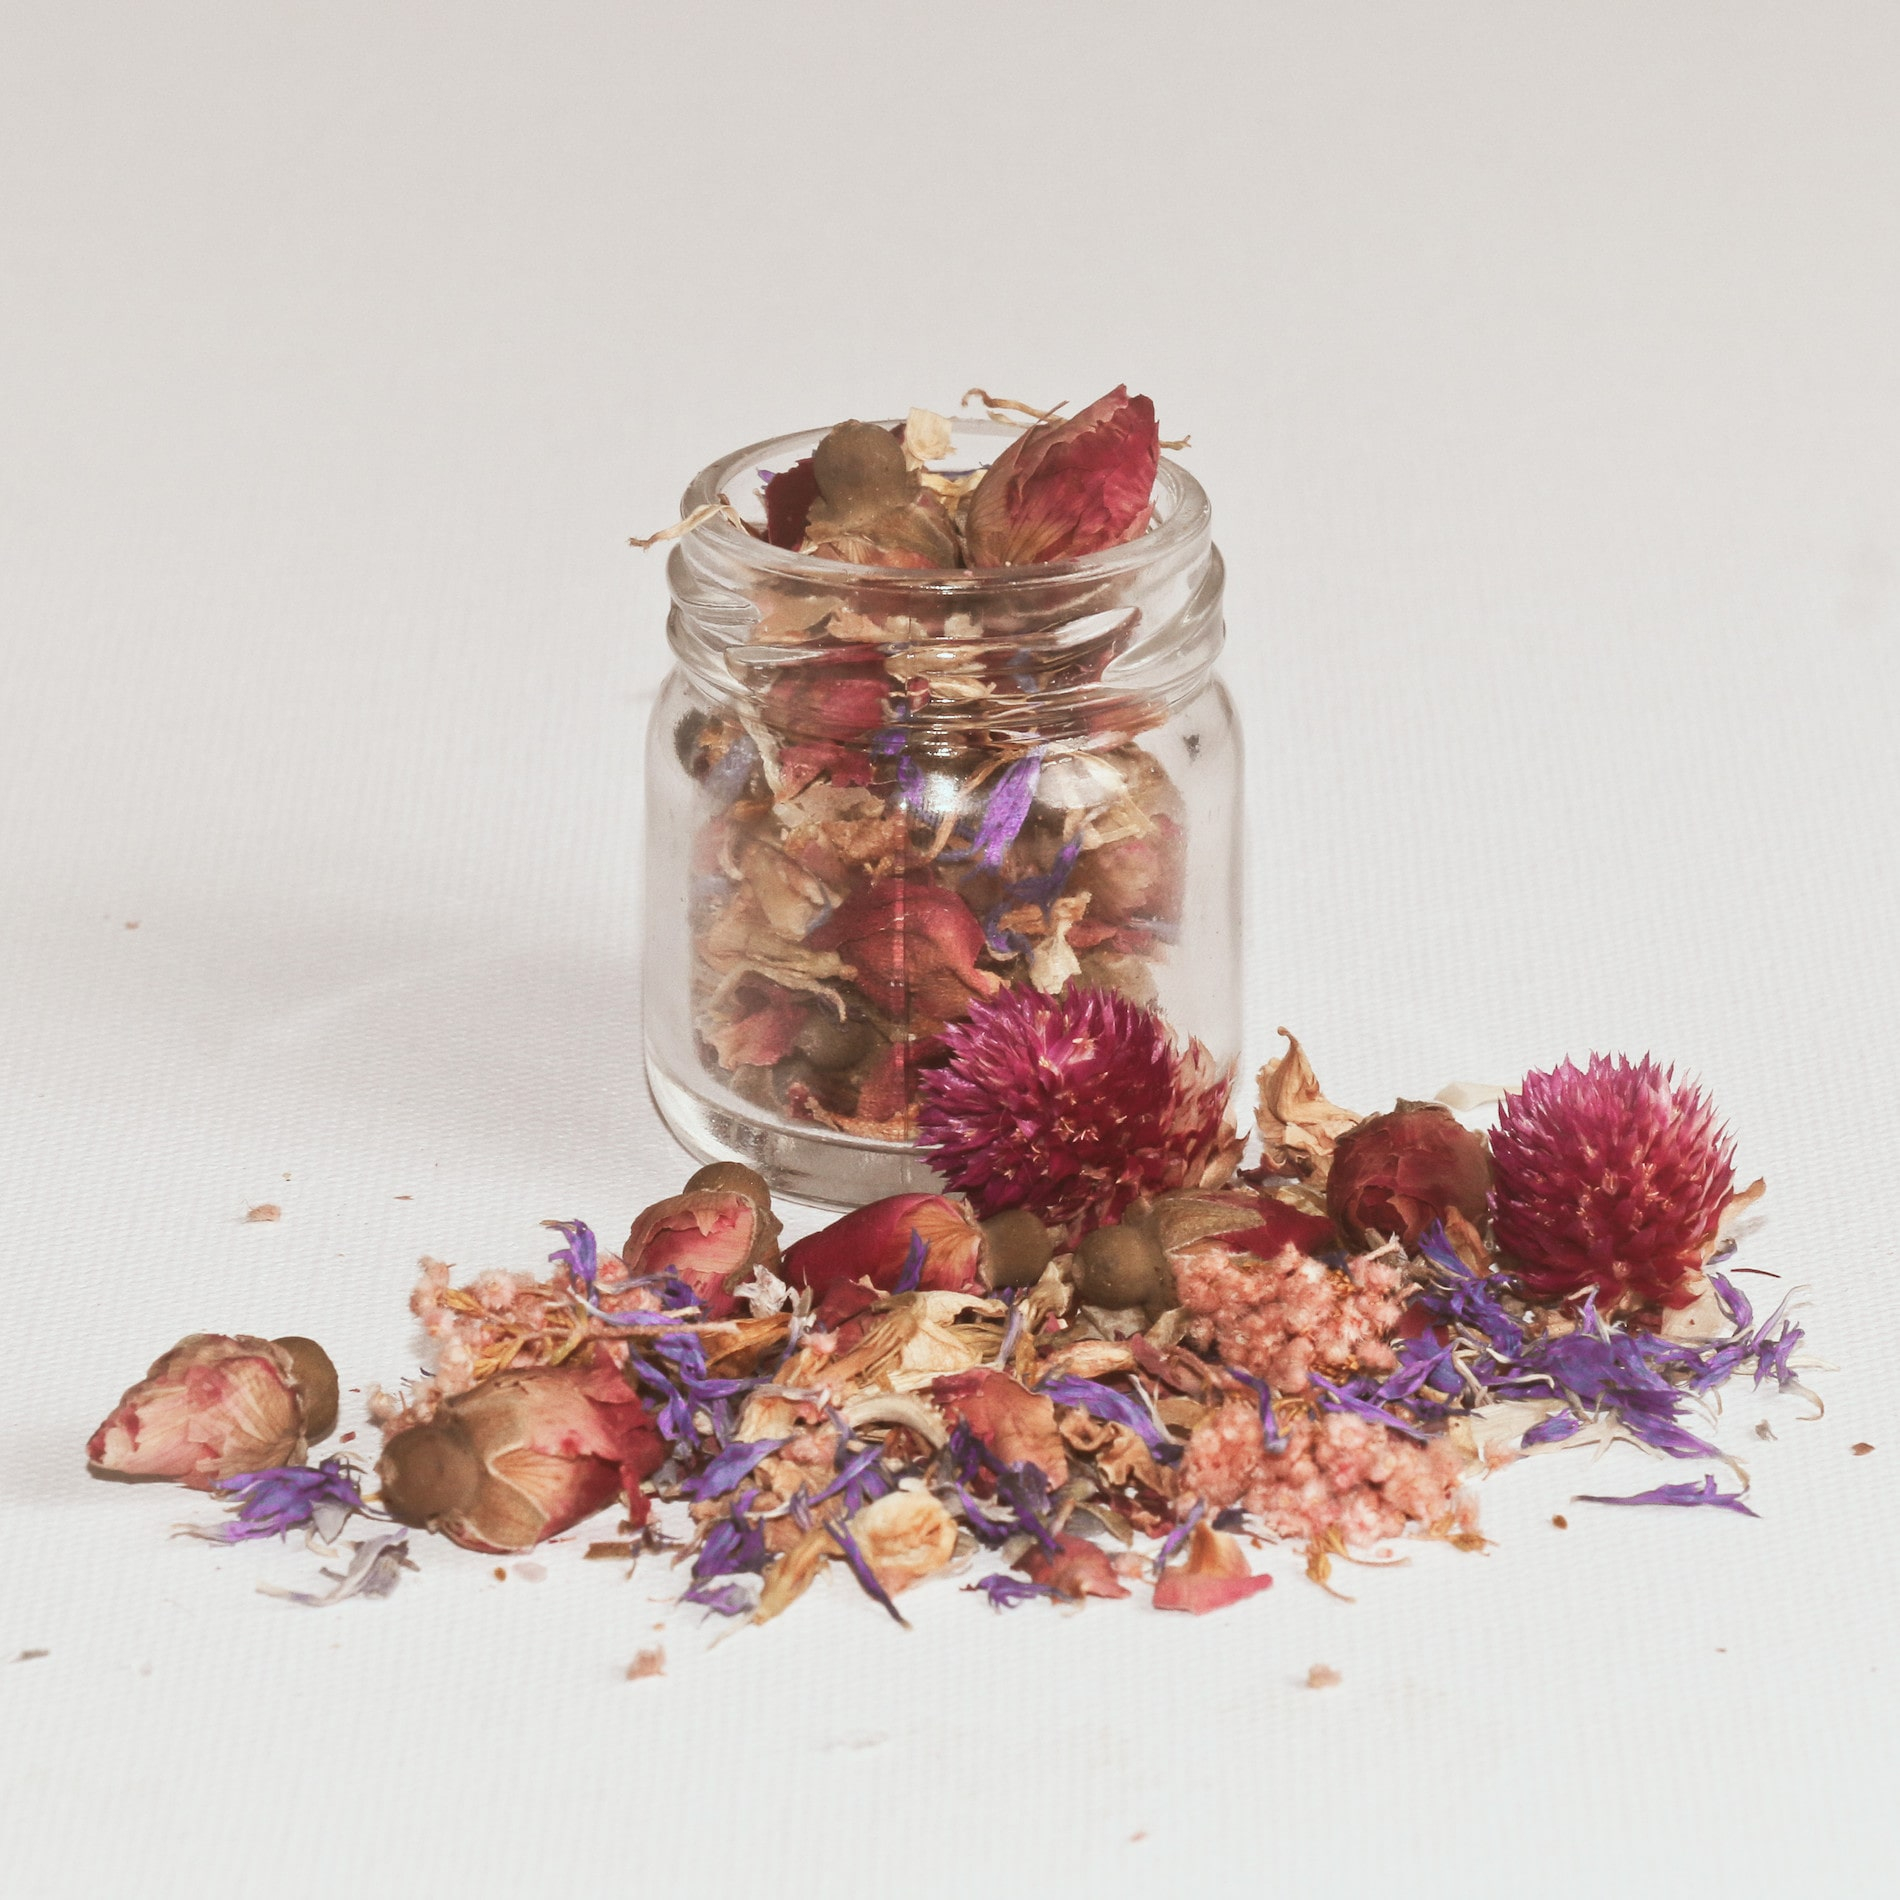 Glass jar filled with dried flowers